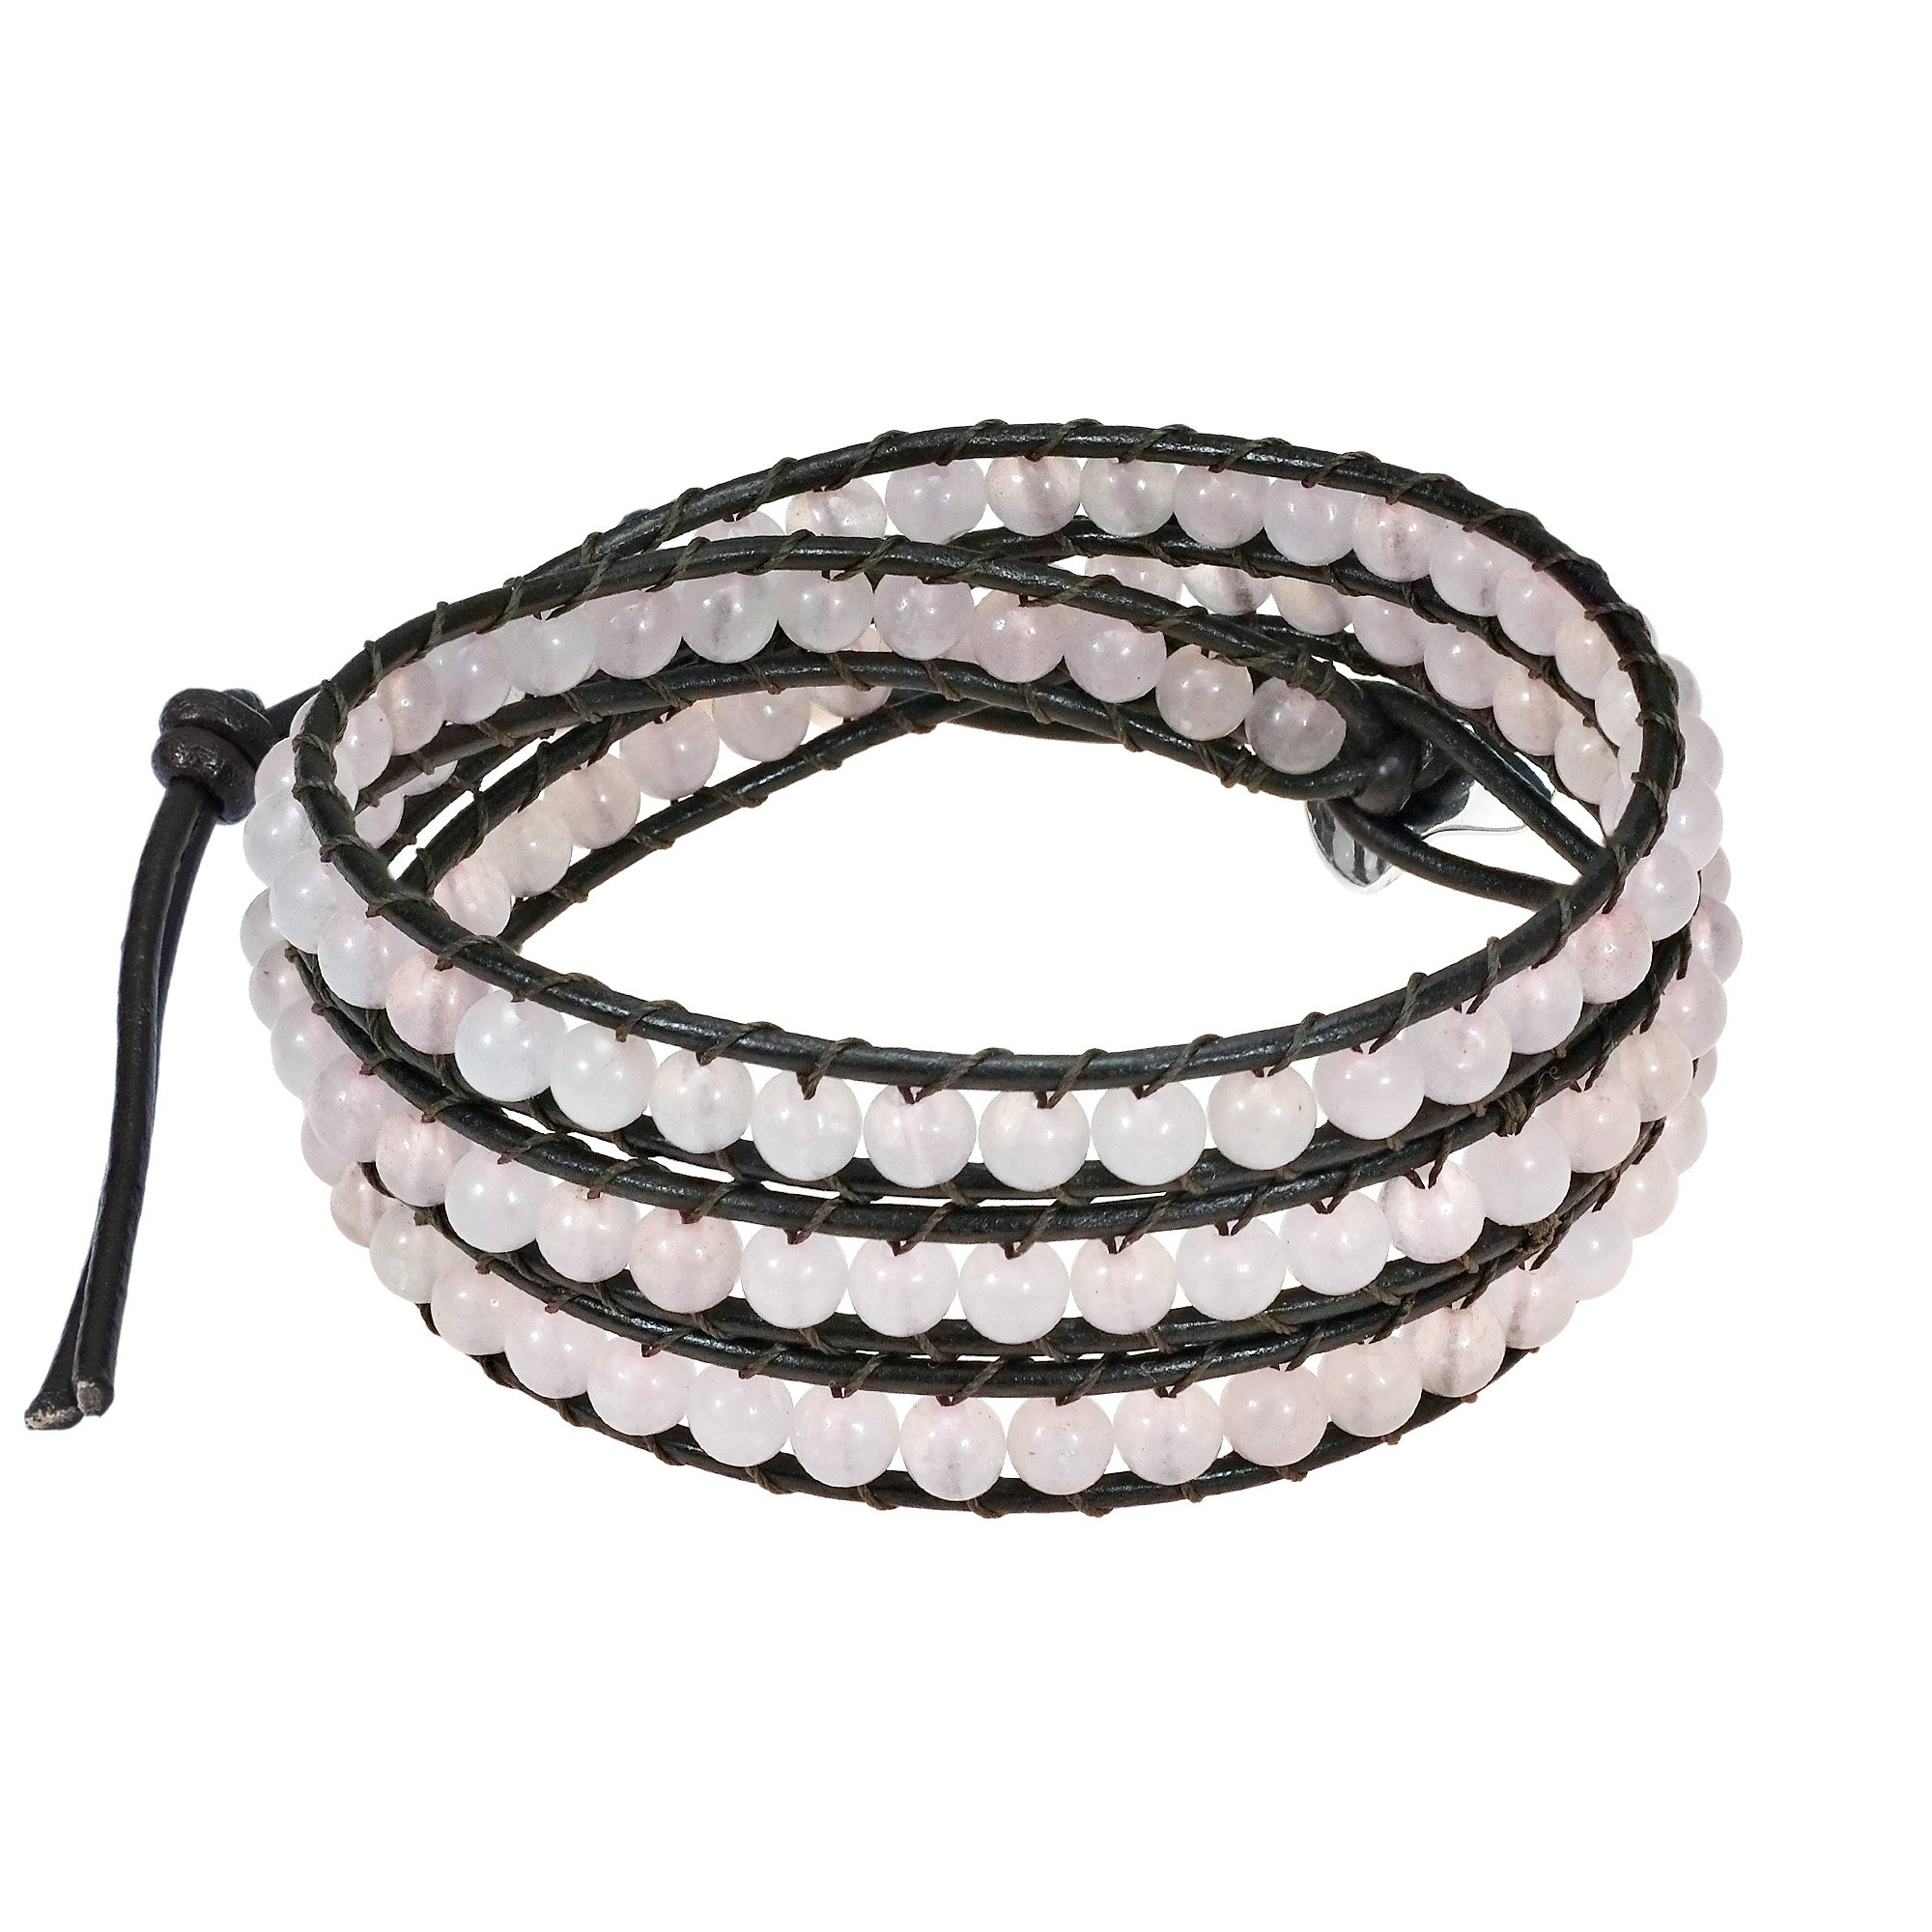 AeraVida Light Rose Muse Pink Glass-Cotton Wax Rope-Leather With Base Metal Clasp Tribal Wrap Bracelet